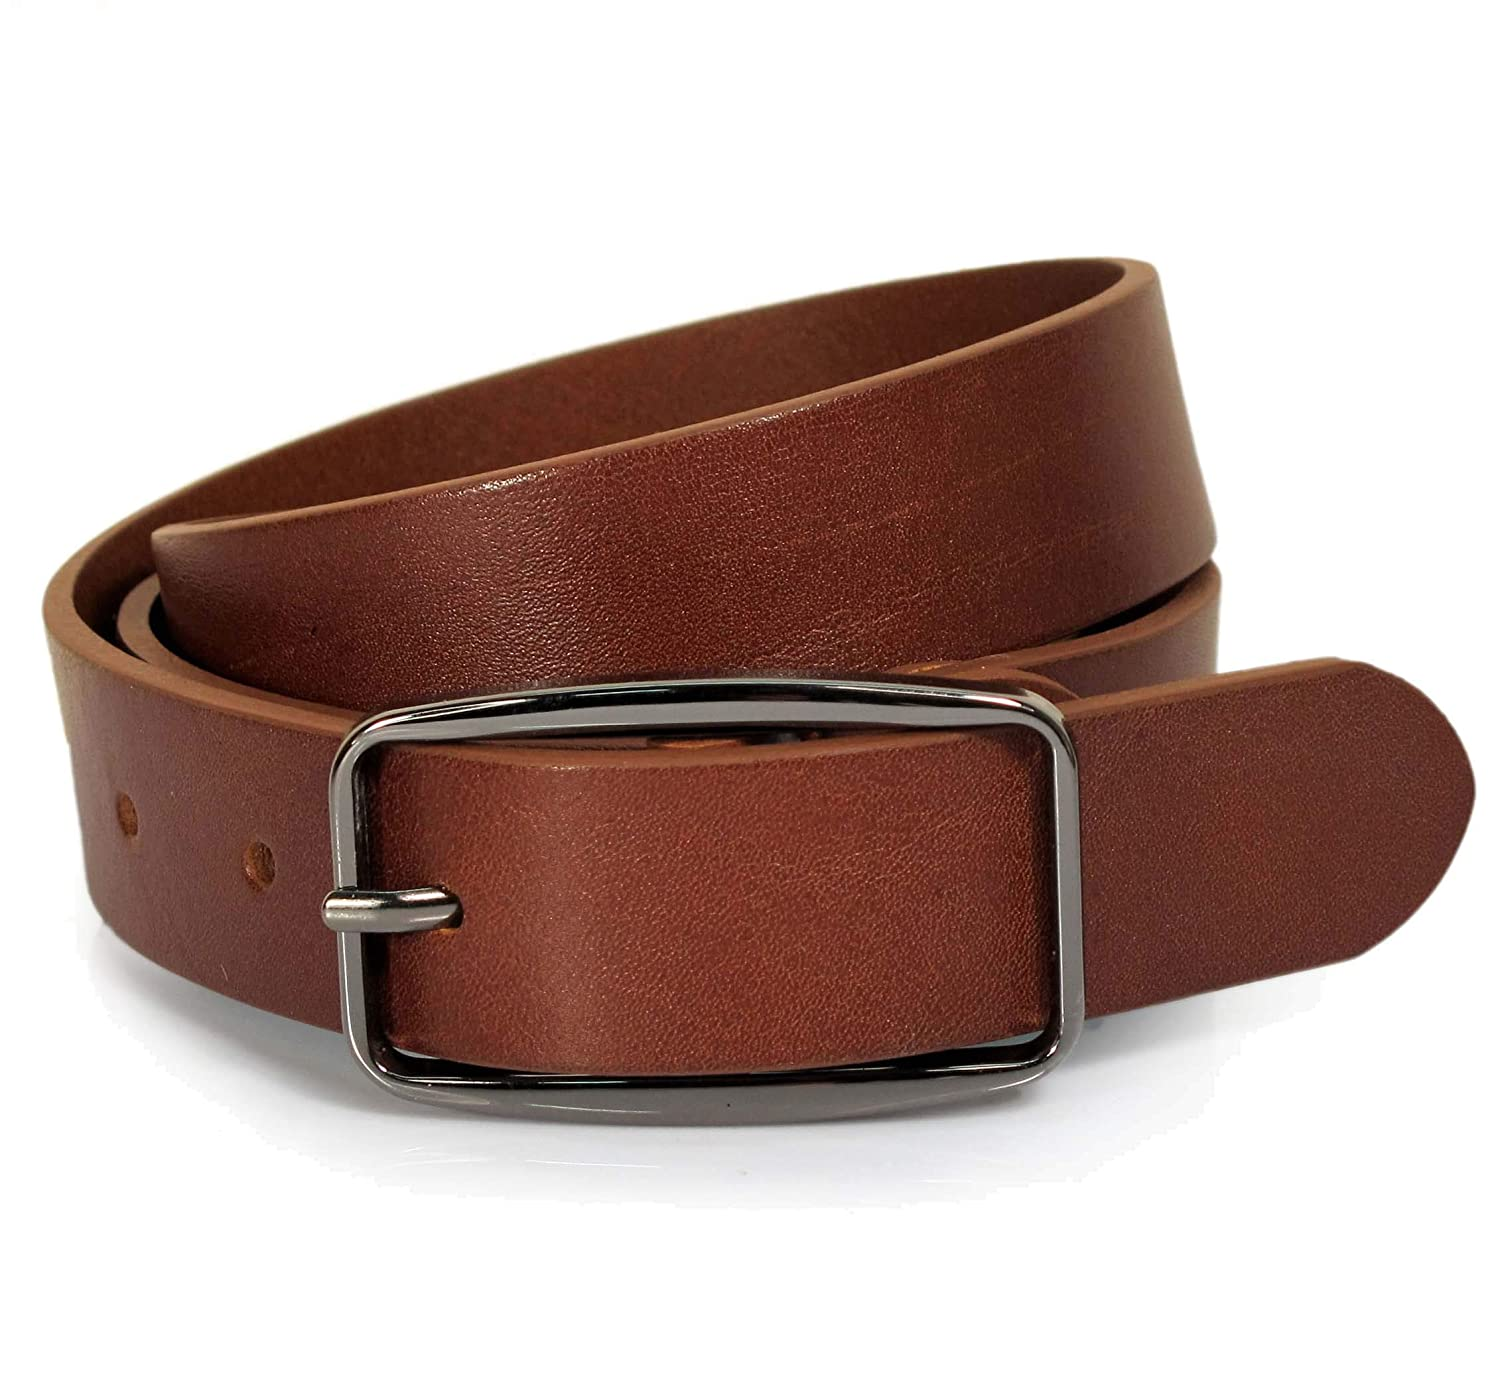 UM3 Mens Real Genuine Leather Tan Brown Belt 1.1 Wide S-L Thick Casual Jeans